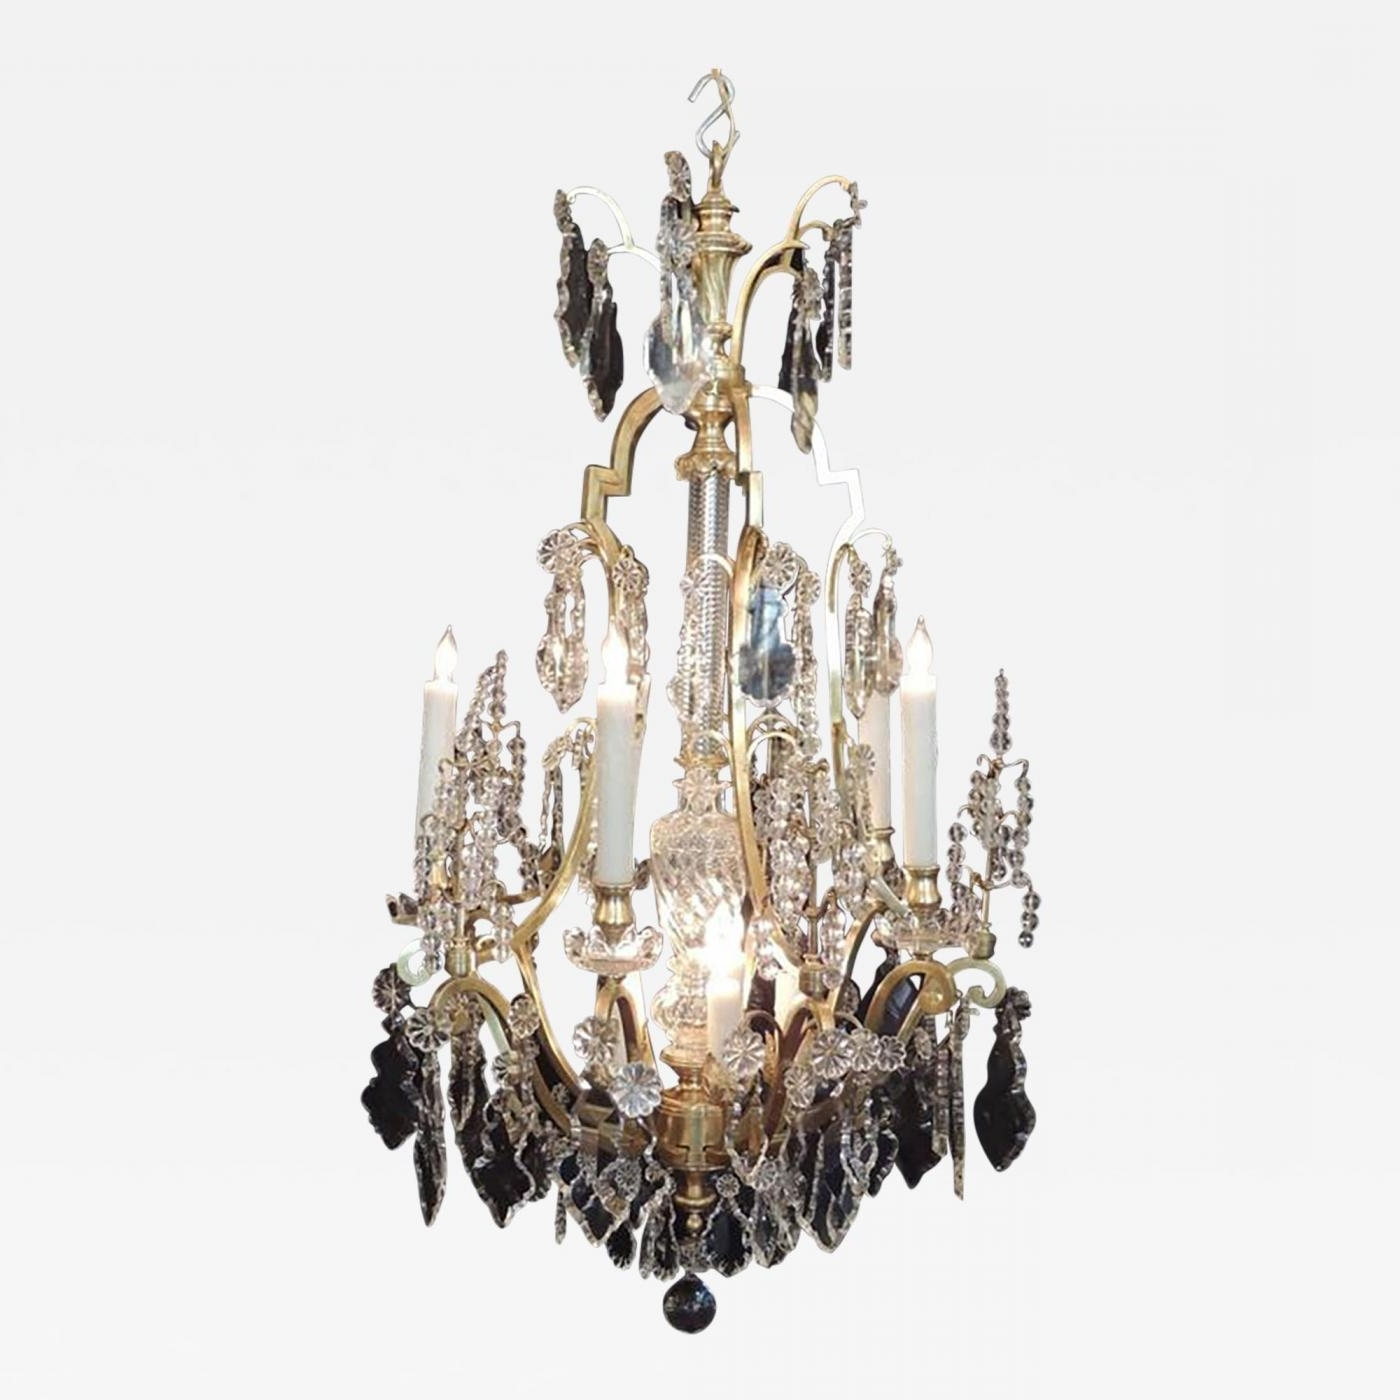 Early 20Th C French Bronze Doré And Lead Crystal Chandelier Intended For 2018 Lead Crystal Chandeliers (View 8 of 15)